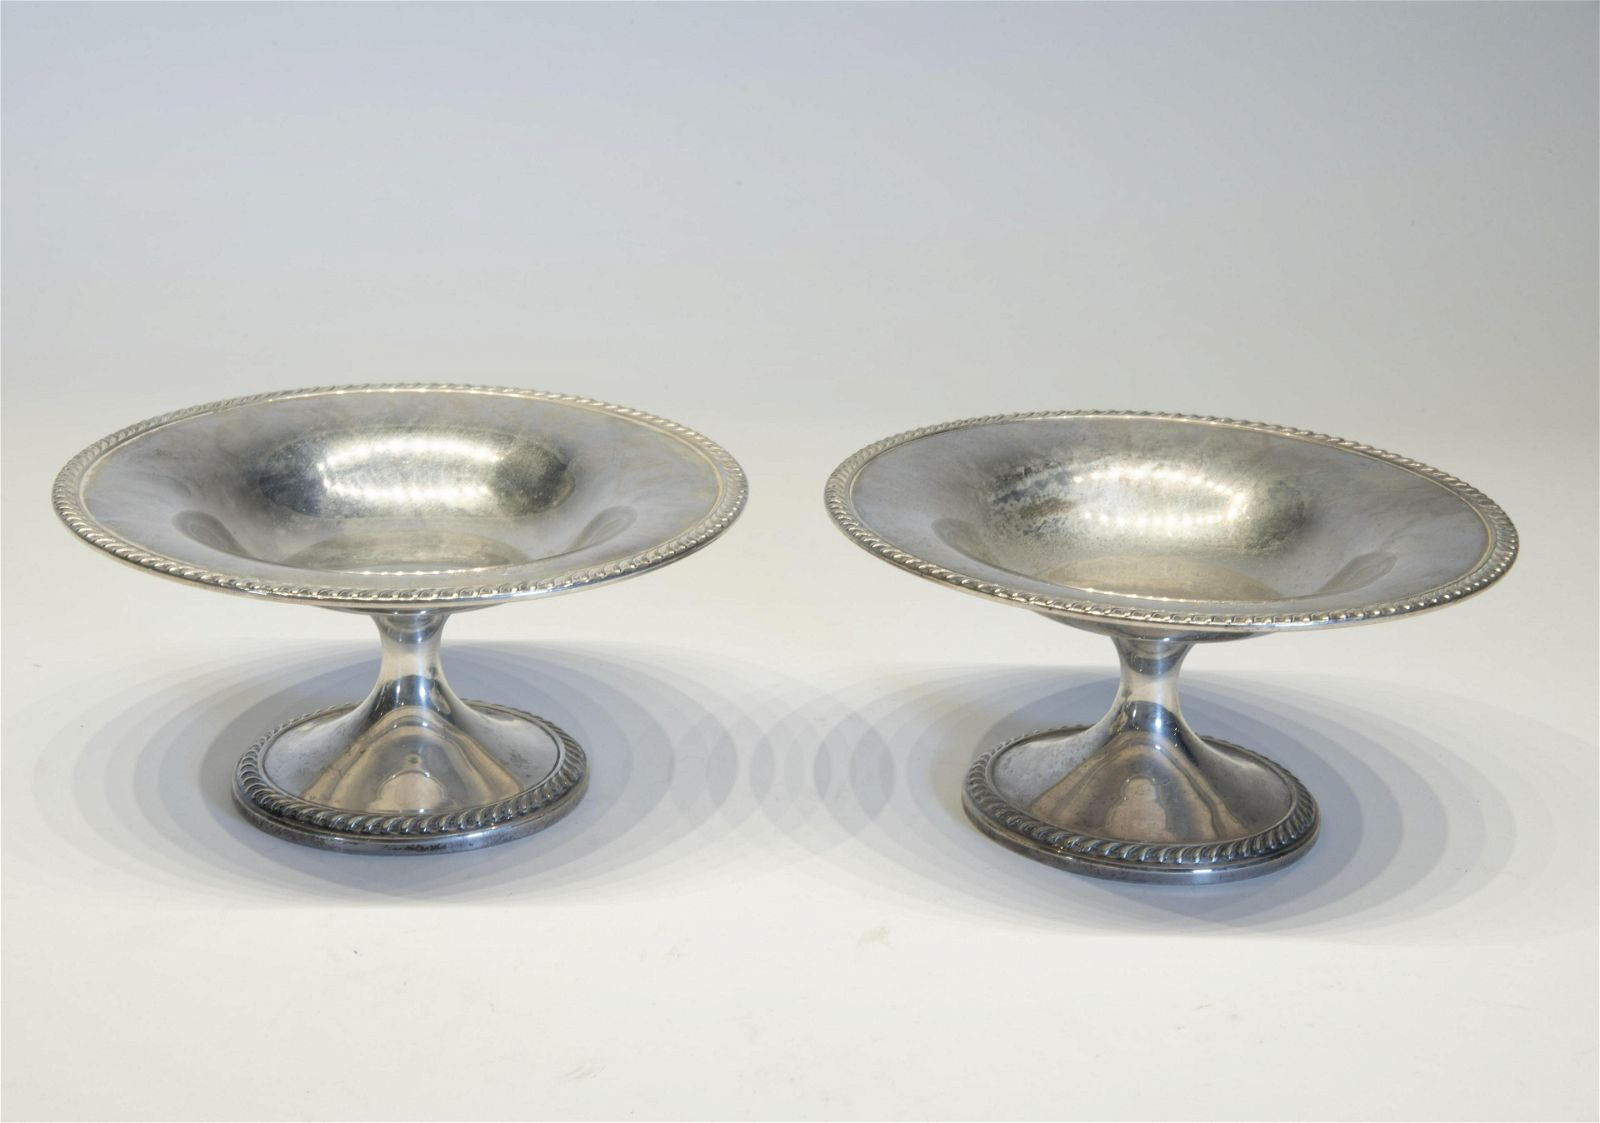 Pair of Sterling Silver Tazzas